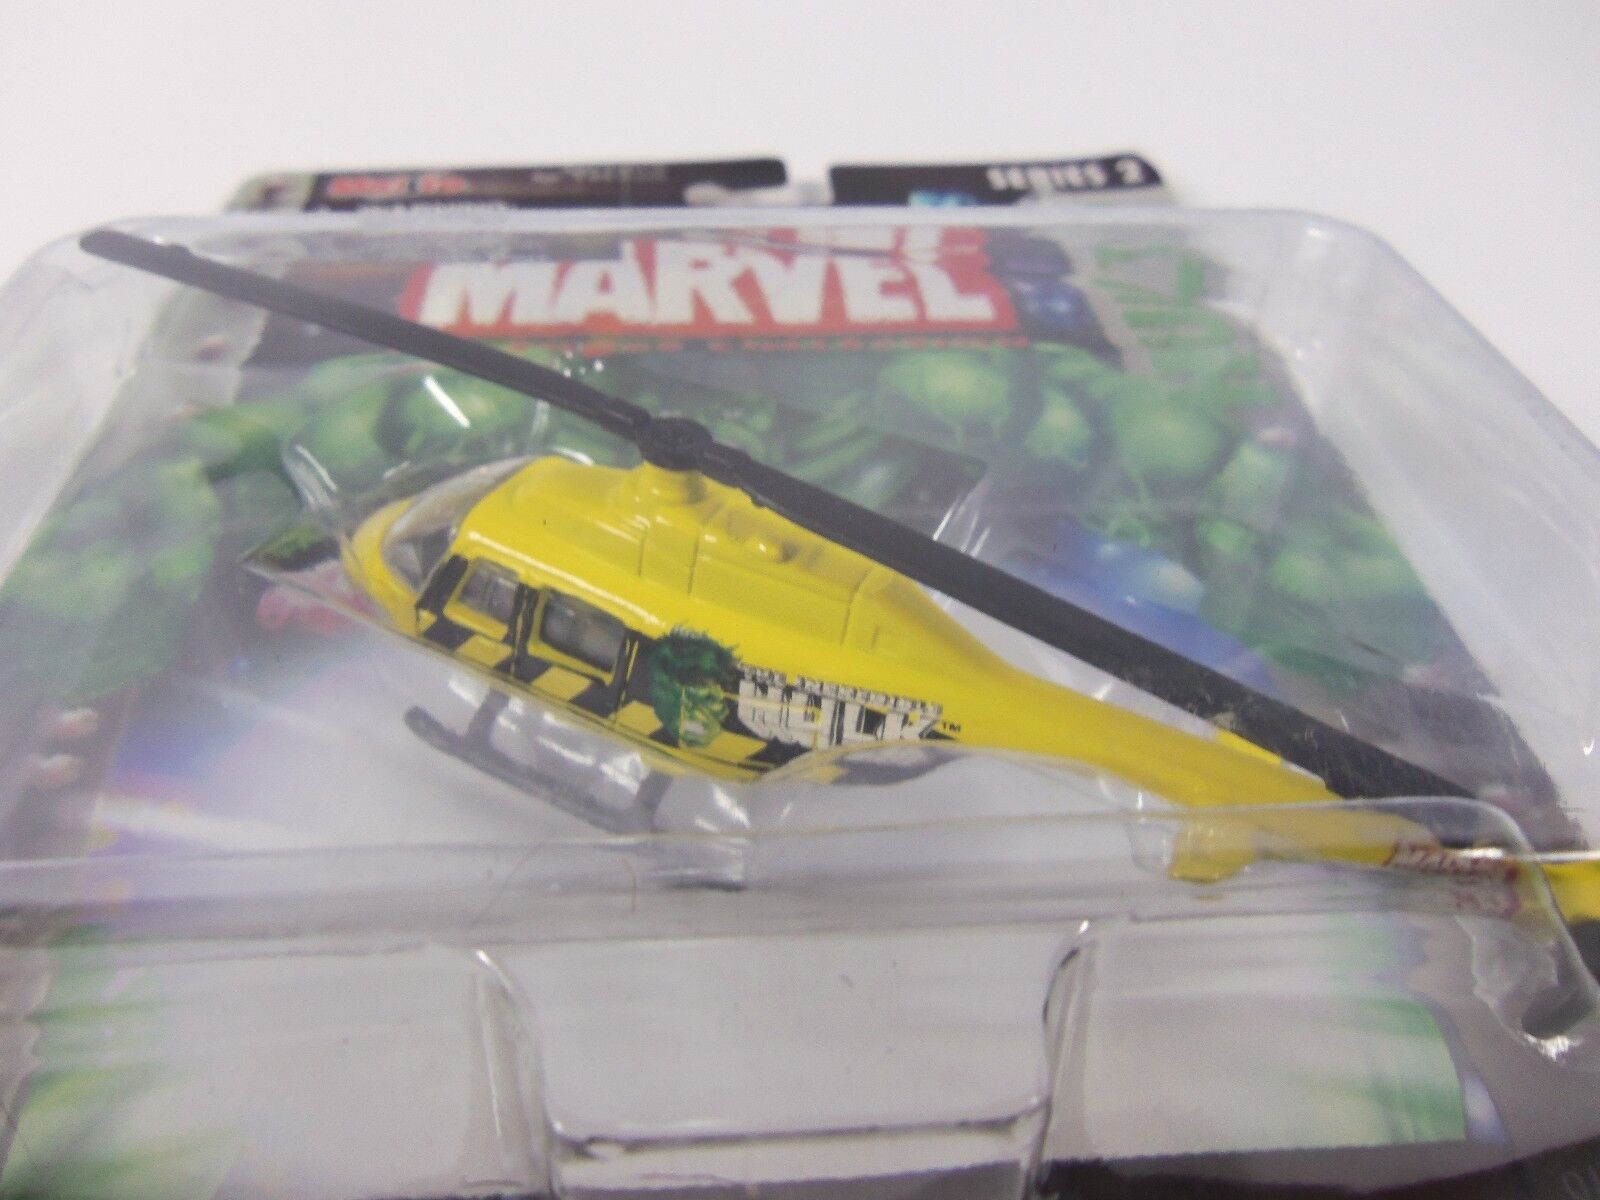 Maisto Ultimate Marvel Air Force Hulk Bell Bell Bell Th-57 Sea Ranger Helicopter Airplane dae8fa